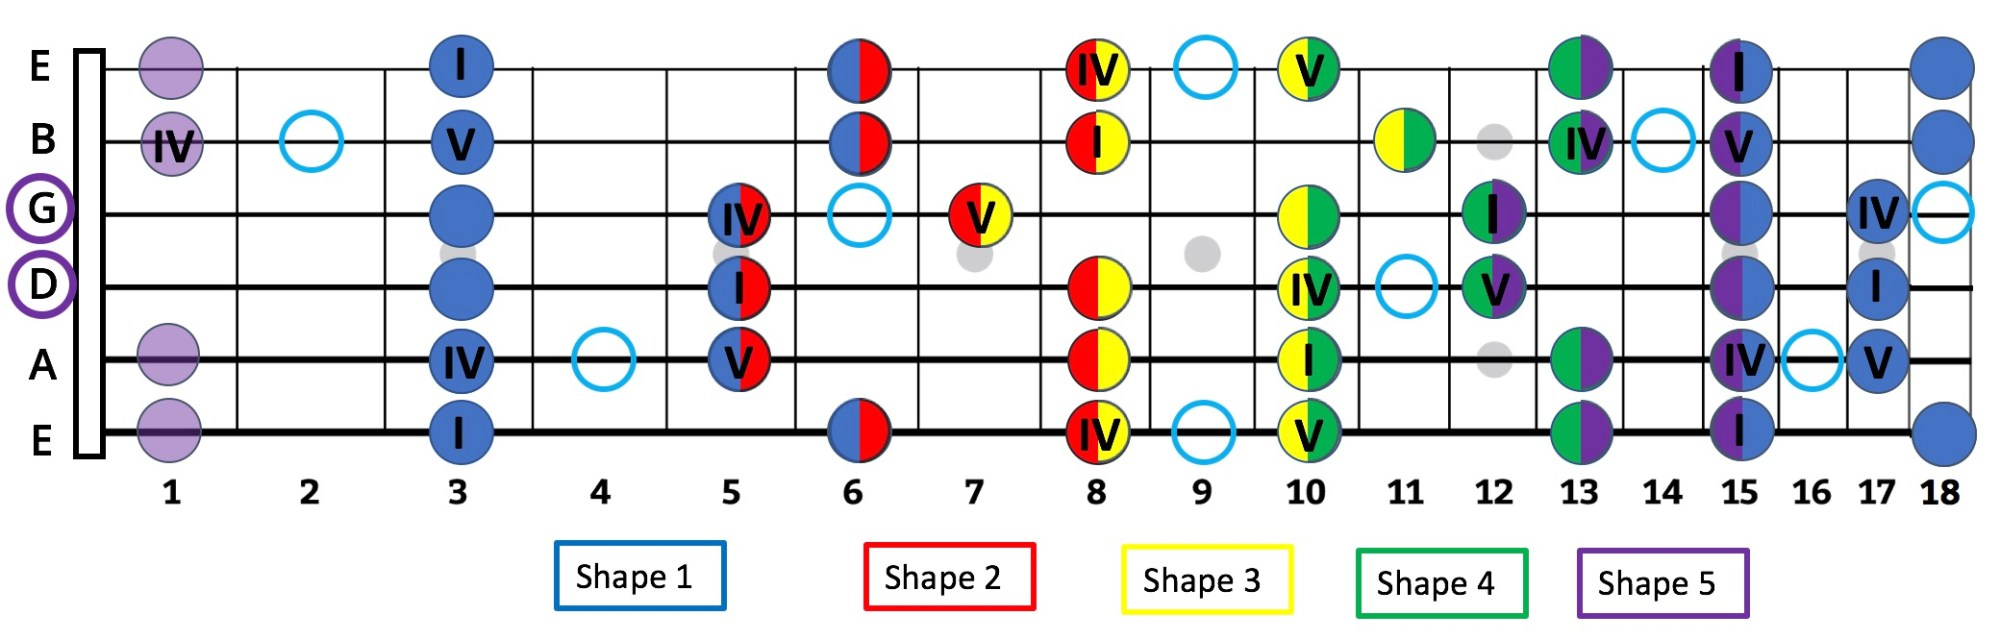 hight resolution of  within the shapes this is why thinking in numbers and intervals can be more valuable and far easier to a guitar player than thinking in note names